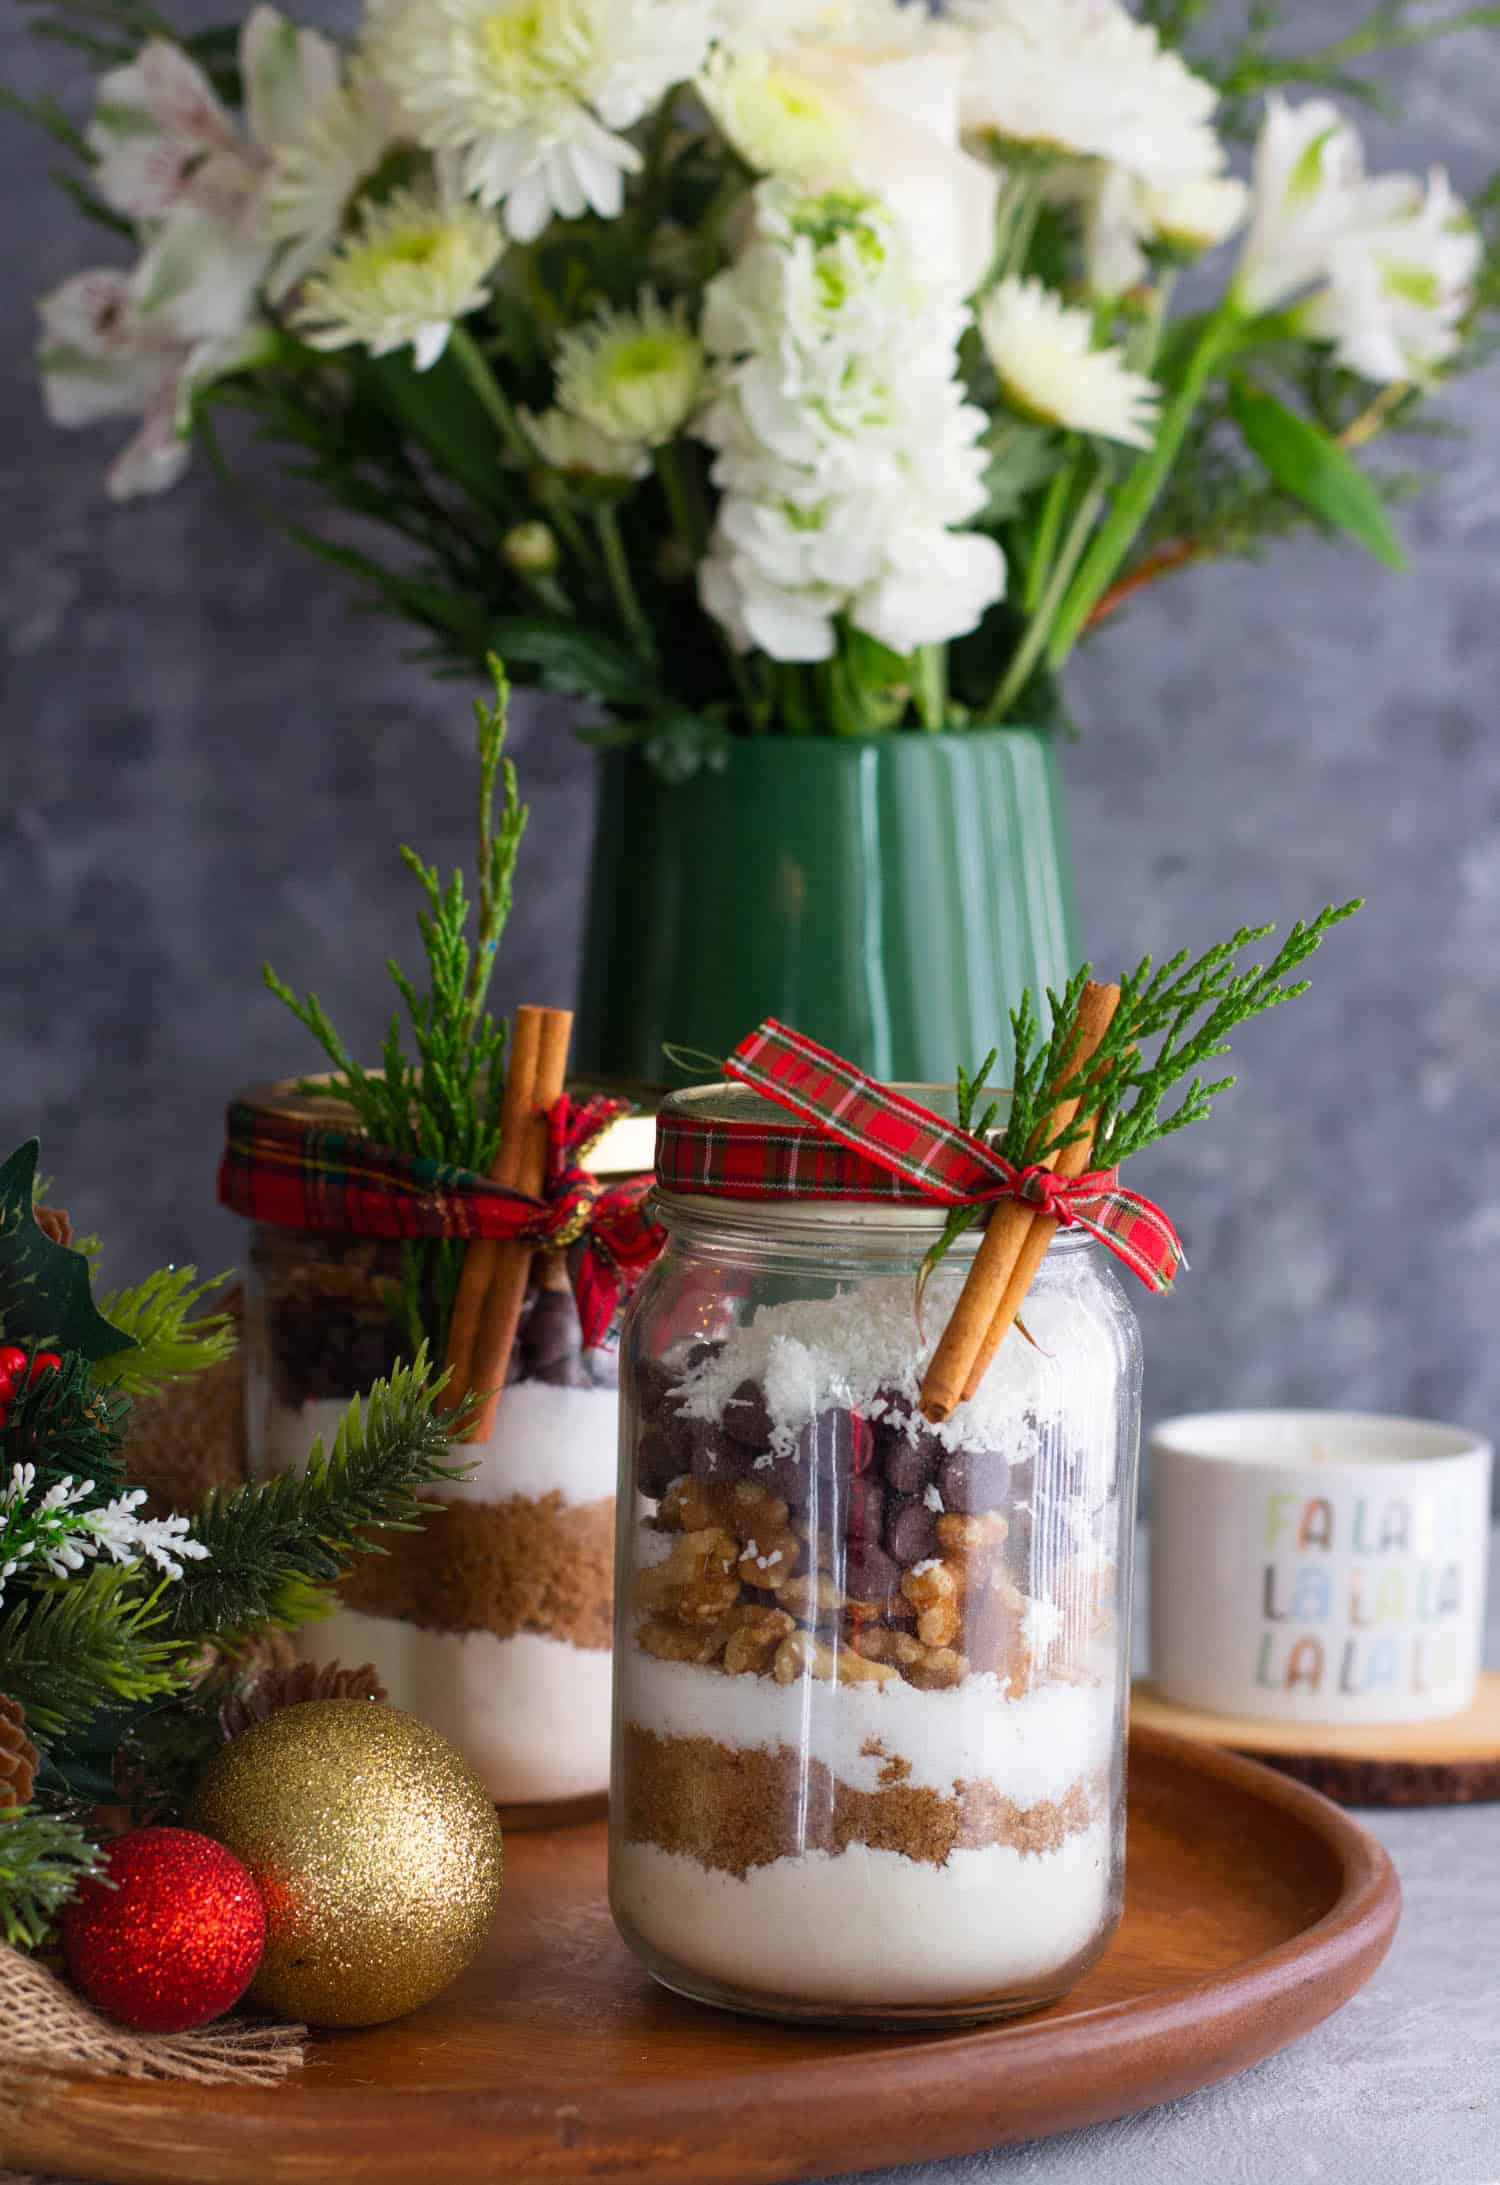 Add a bouquet and a candle to make a nice cookie mix in a jar gift.